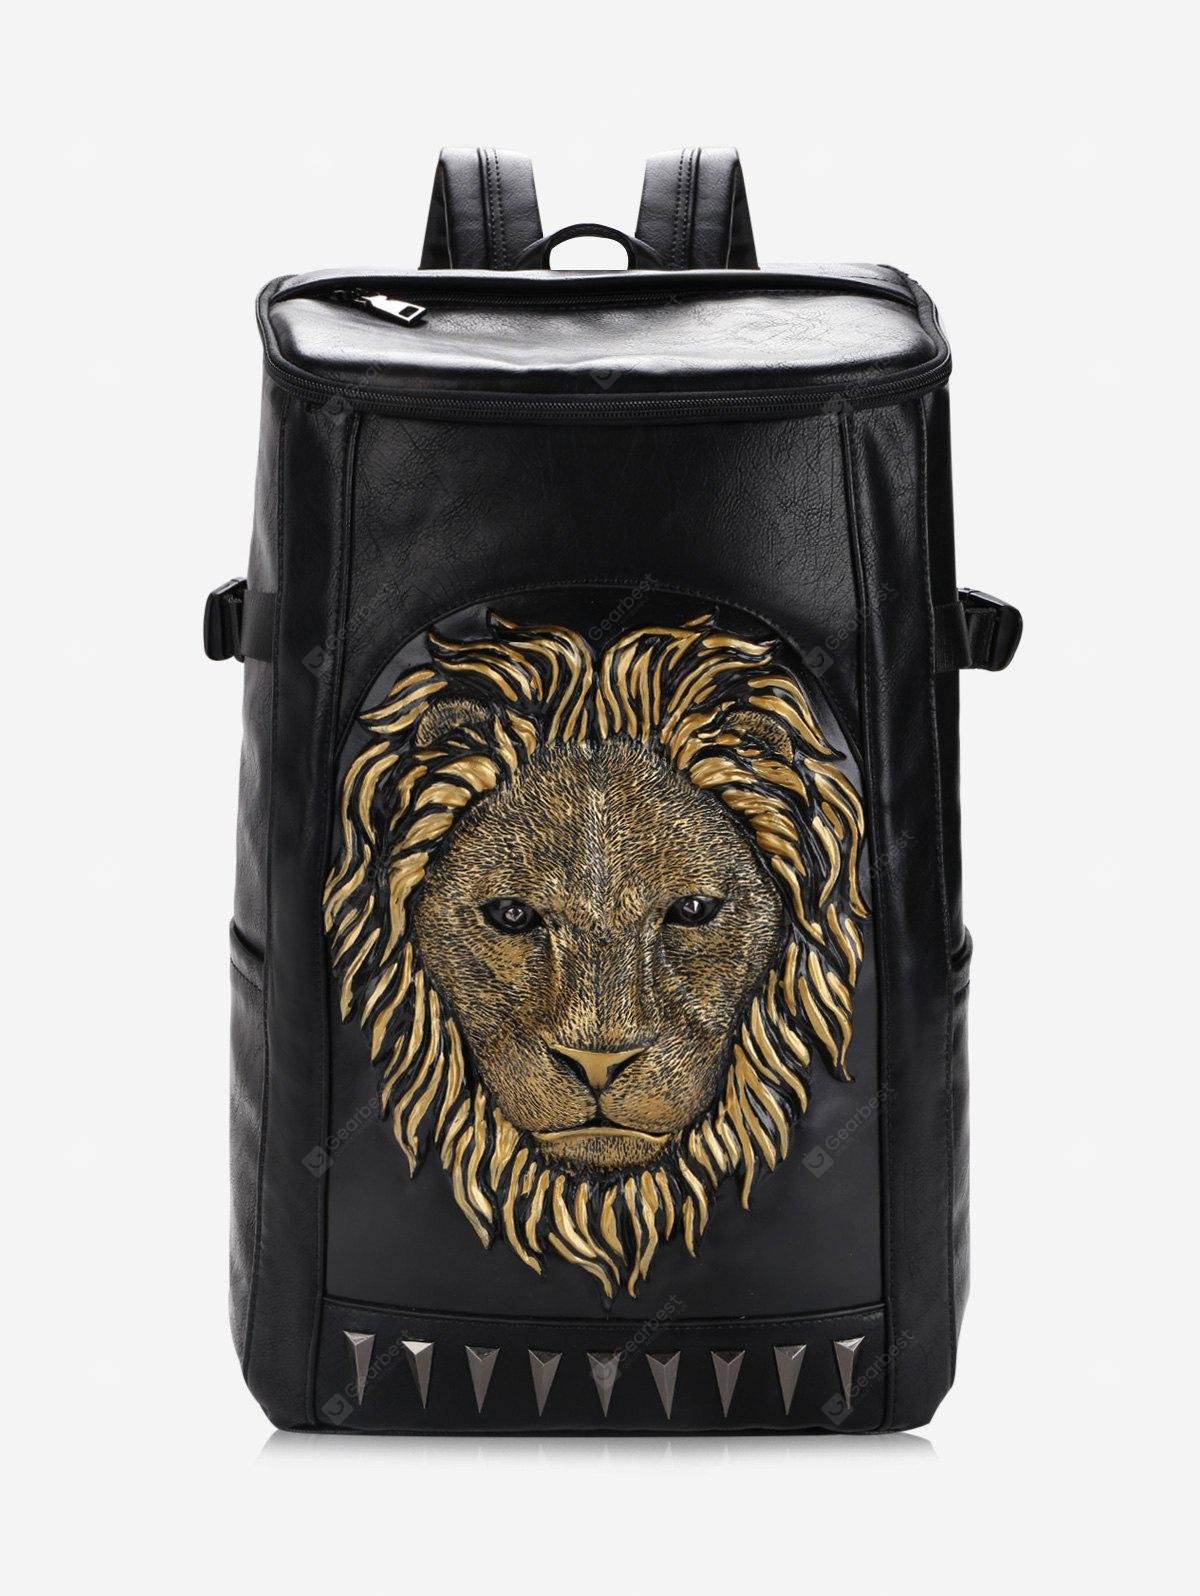 3D Lion Embellished Backpack